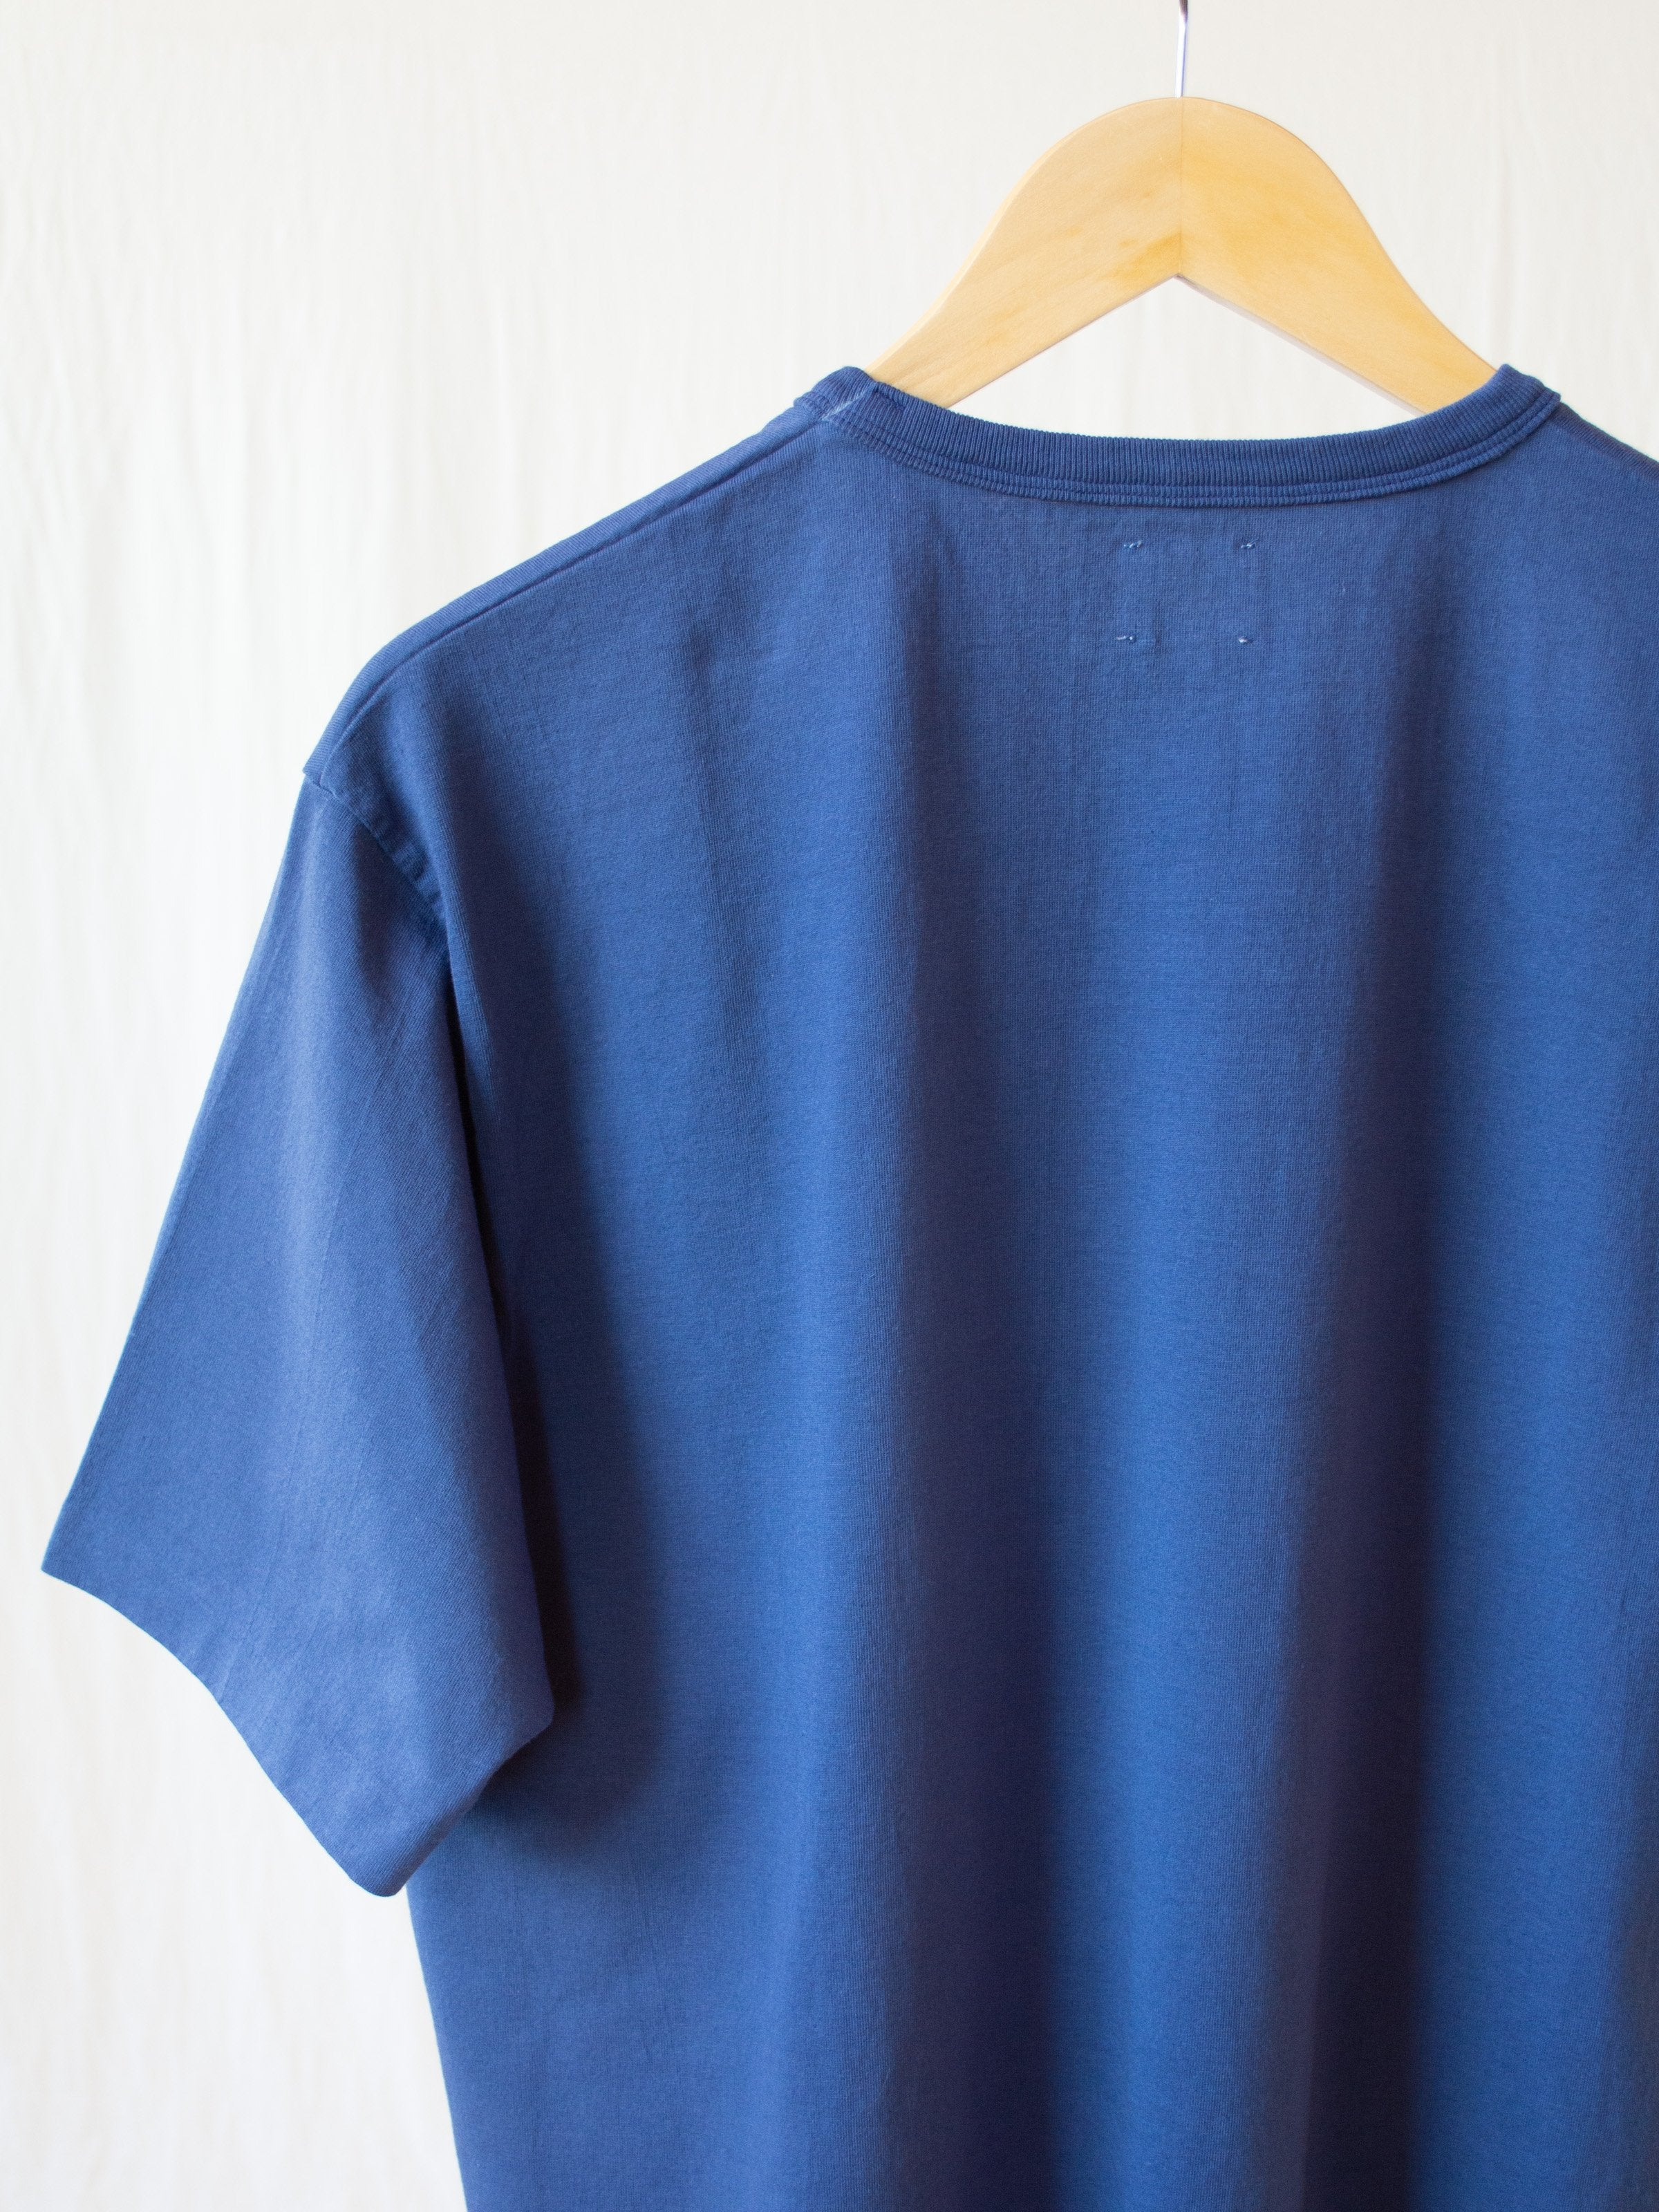 Namu Shop - Phlannel Cotton Open-End Yarn T-Shirt